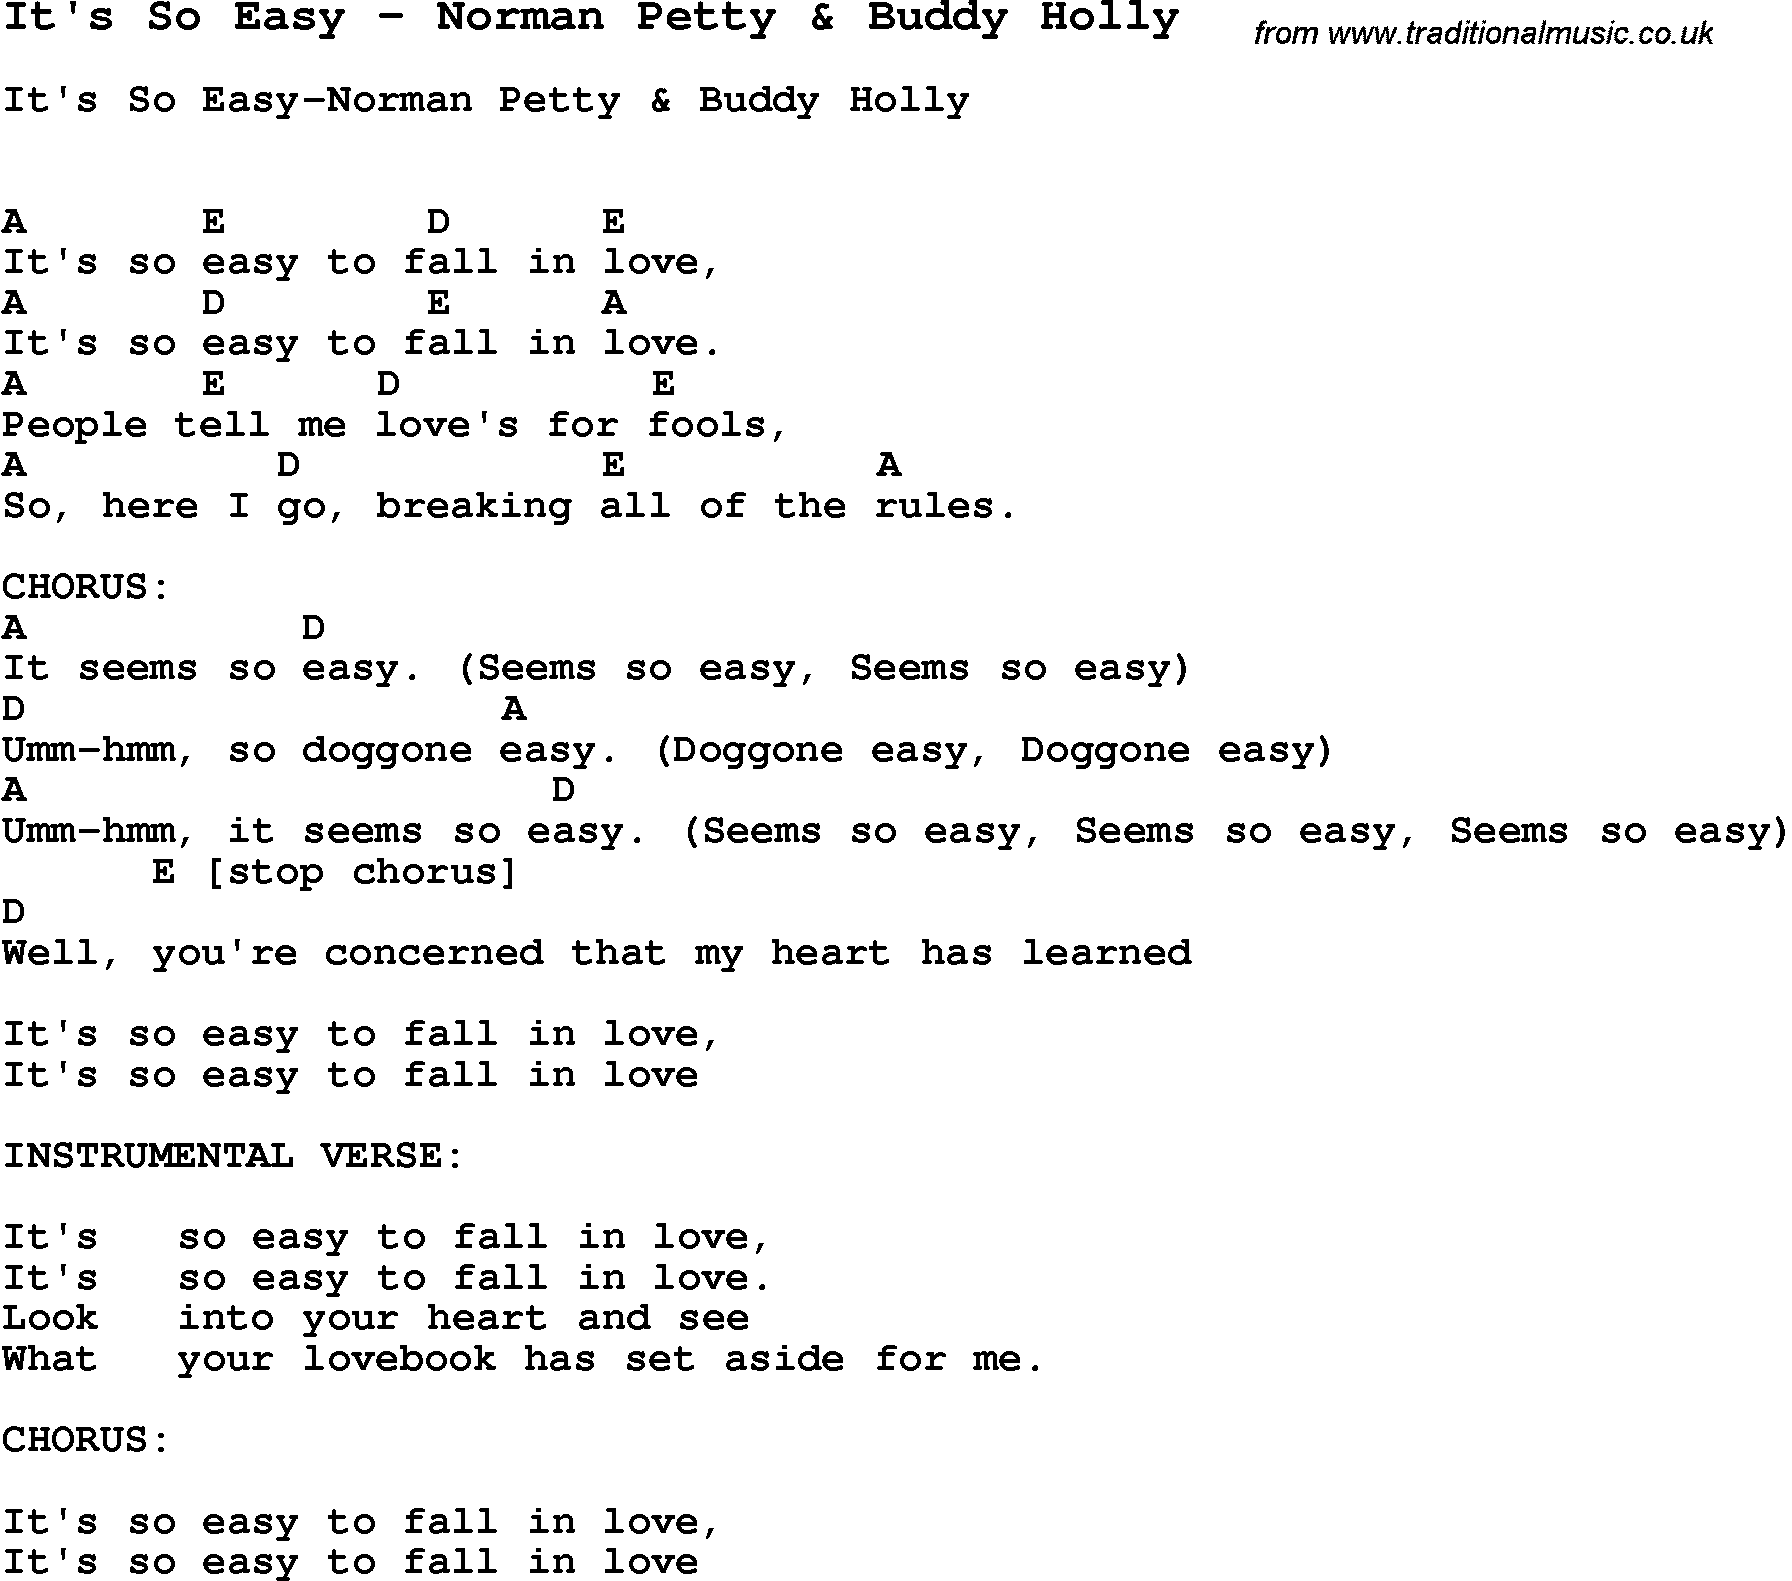 Song Its So Easy By Norman Petty Buddy Holly With Lyrics For